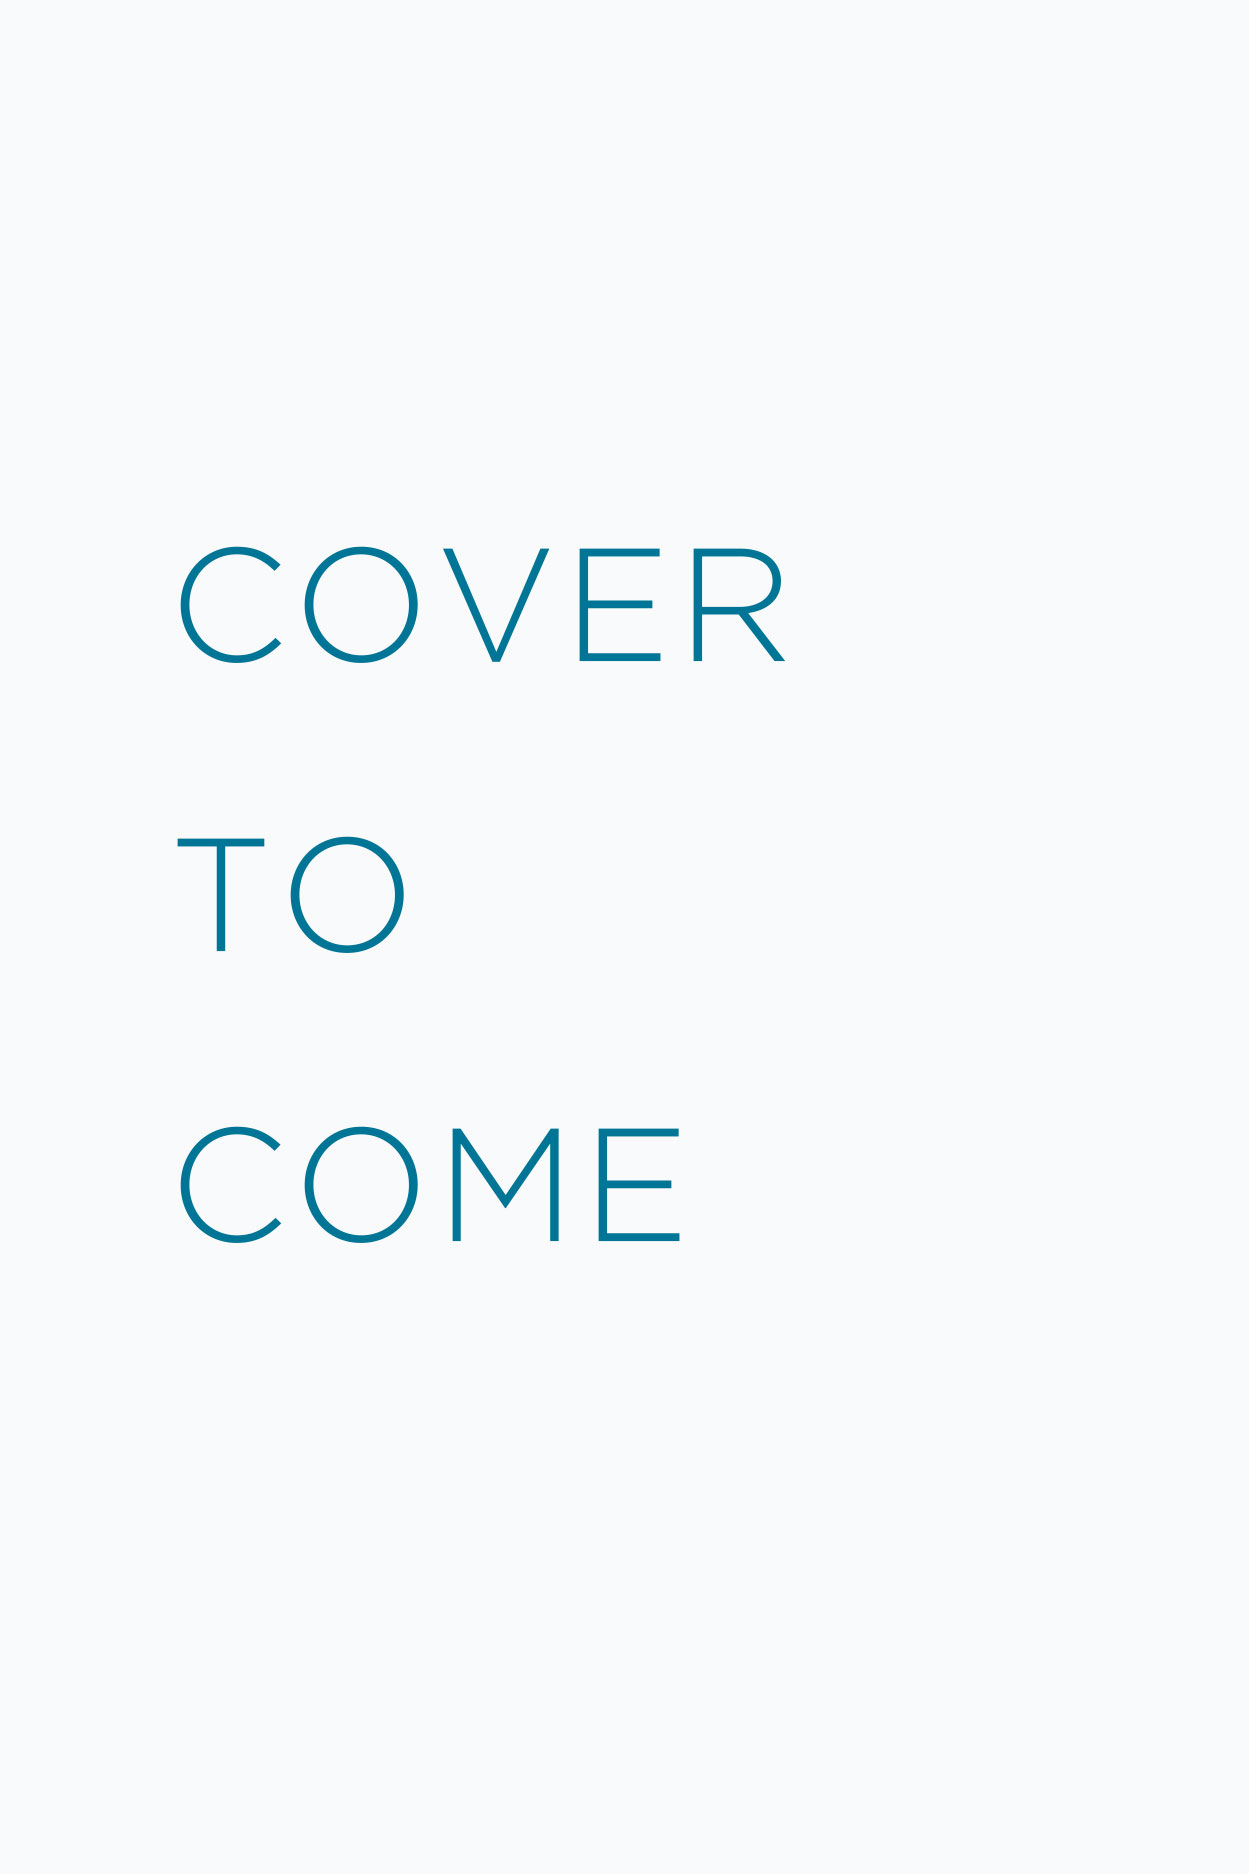 Rainforest tree